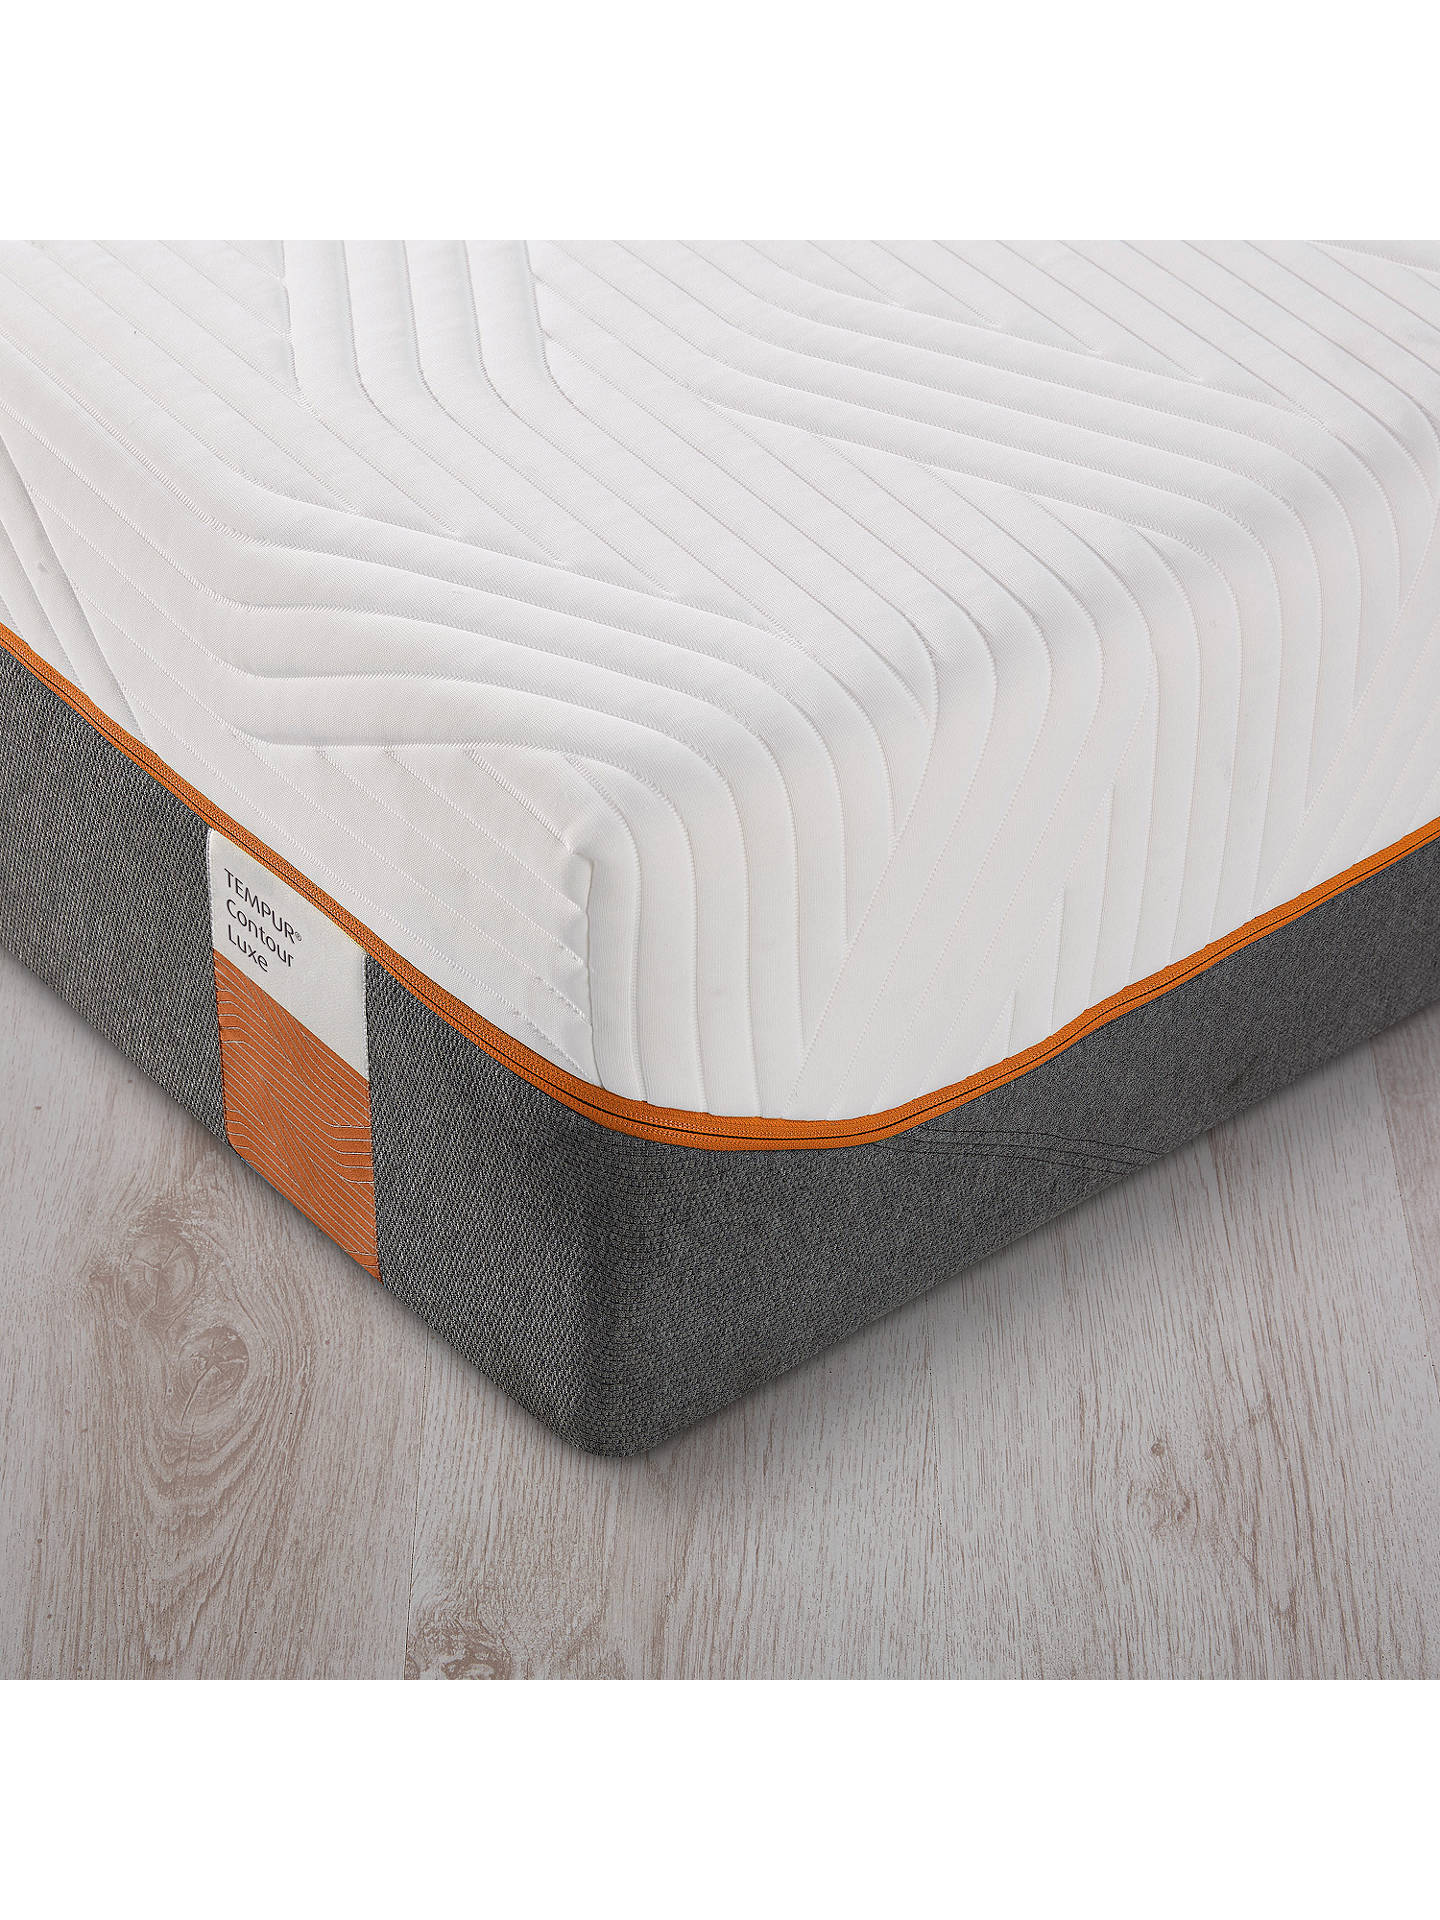 BuyTempur Contour Luxe 30 Memory Foam Mattress, Firm, European King Size Online at johnlewis.com